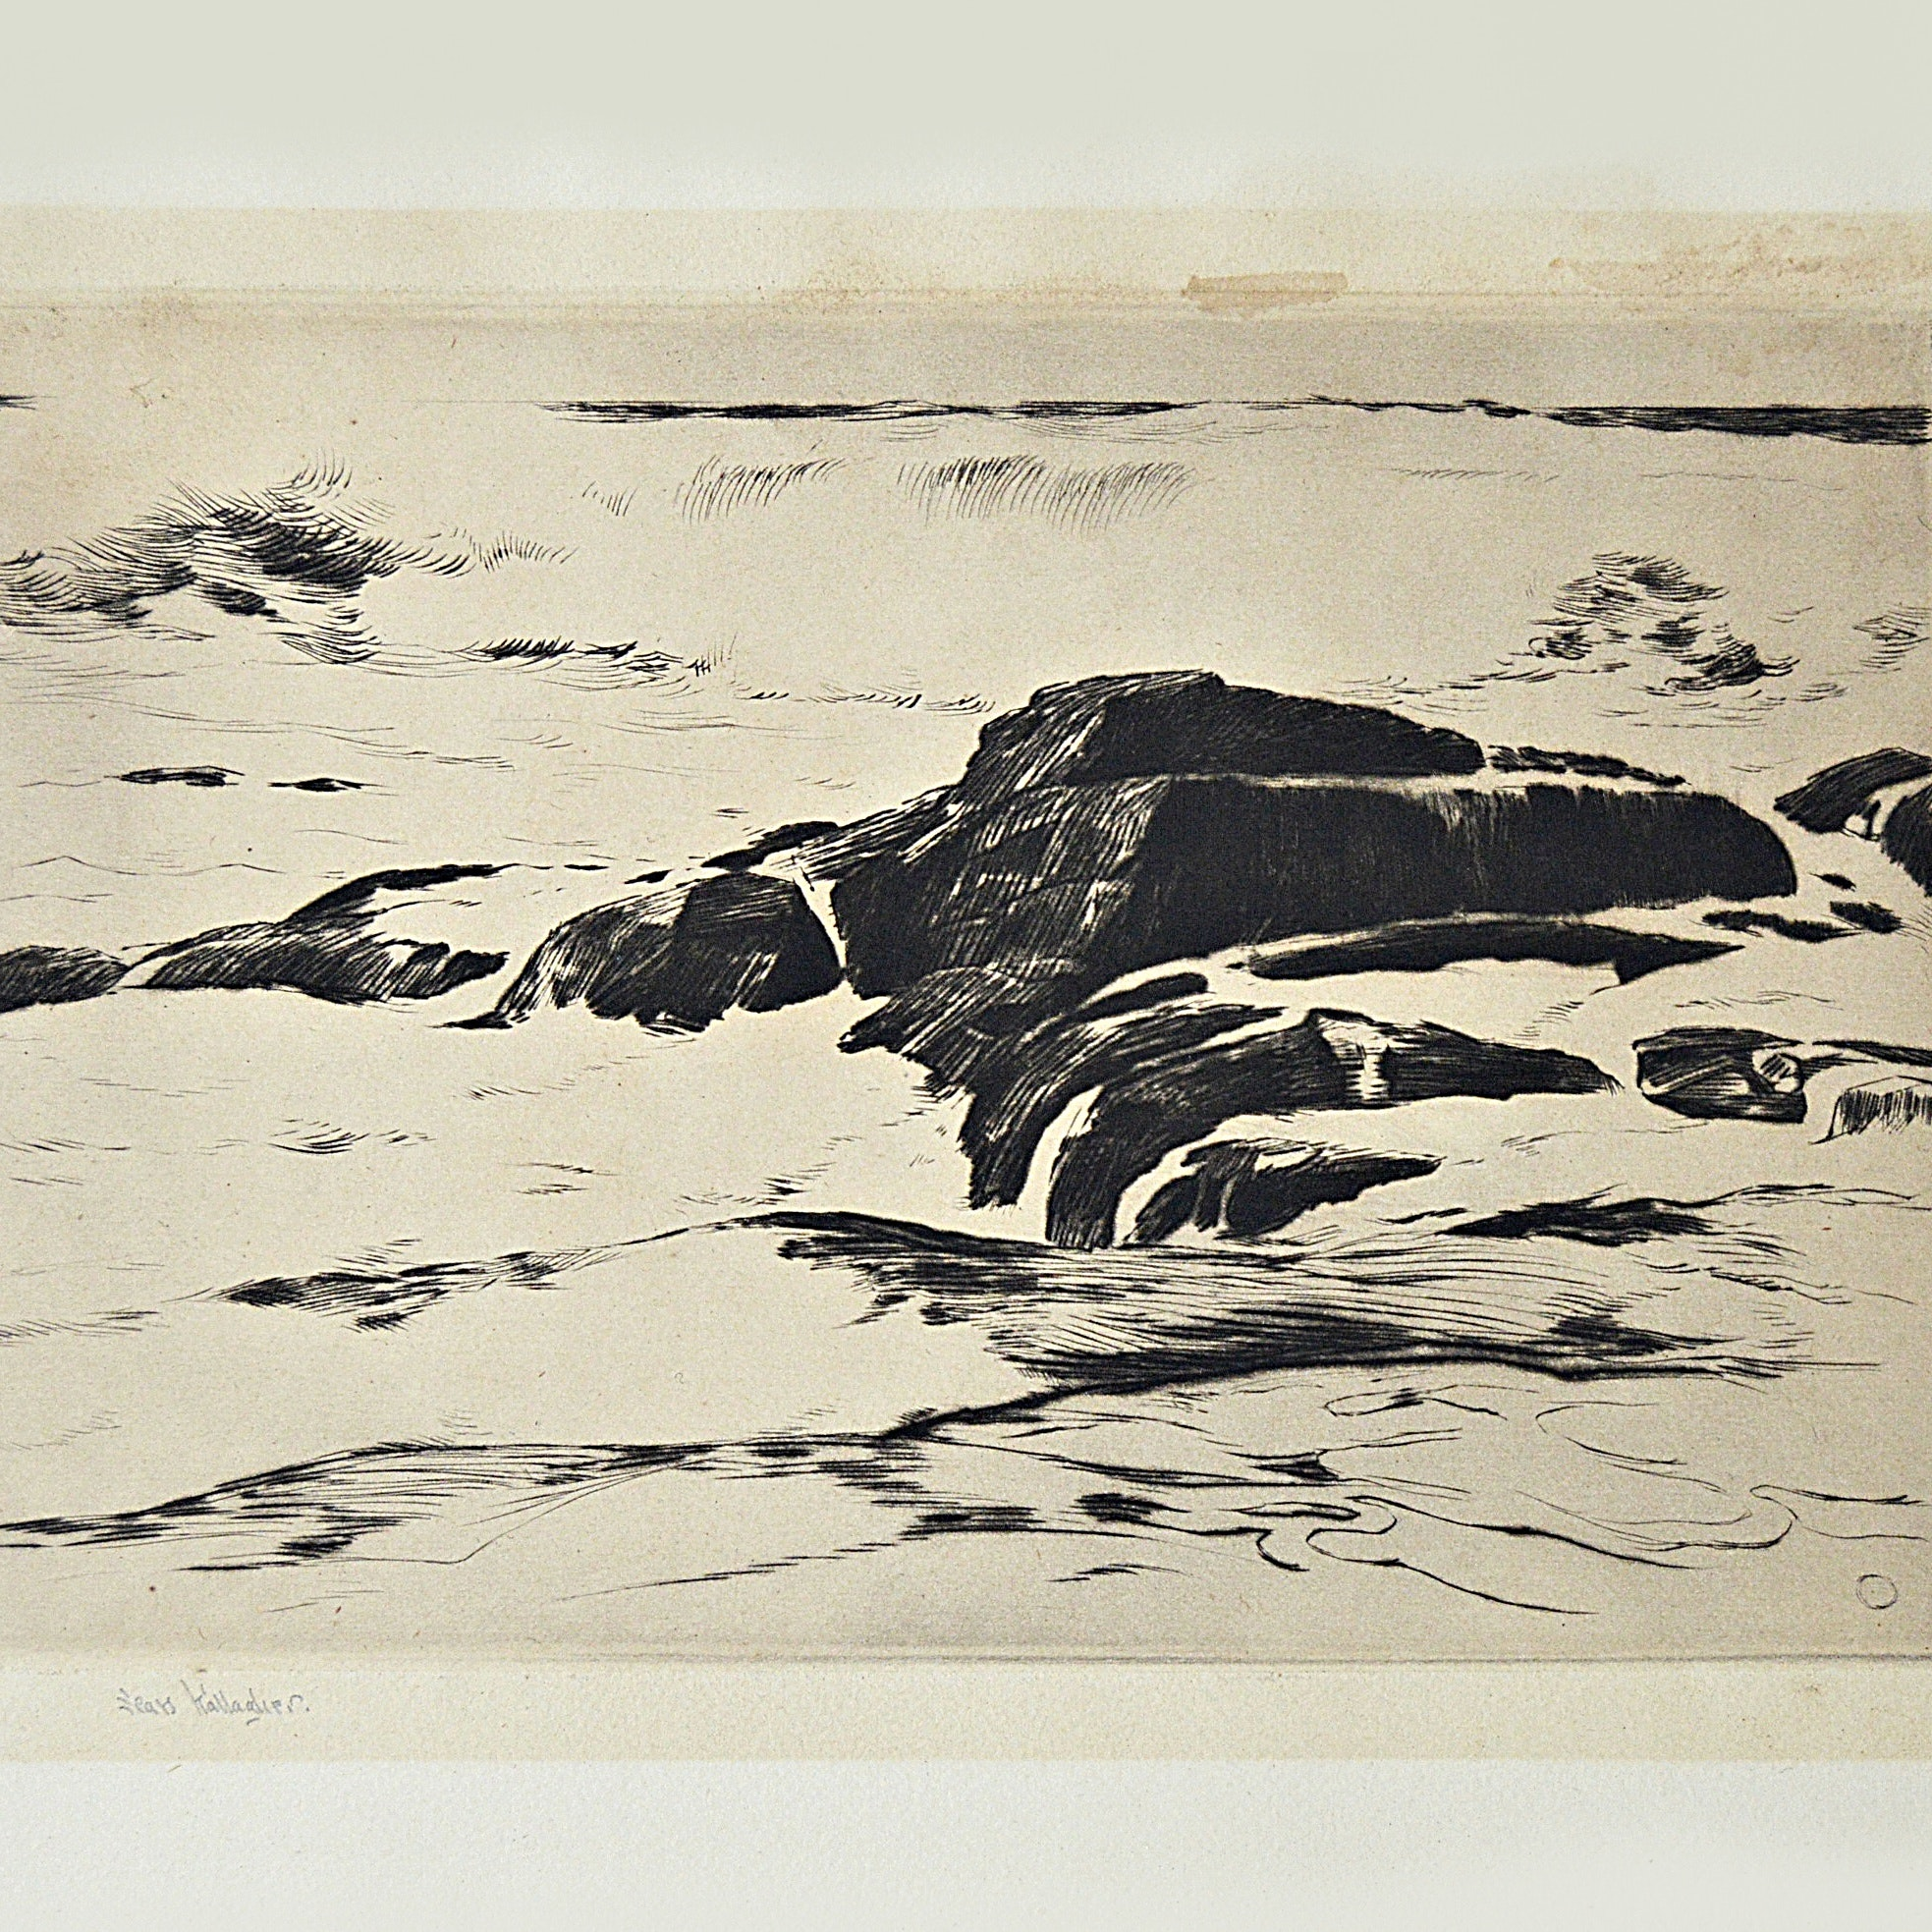 Sears Gallagher Signed Seascape Etching